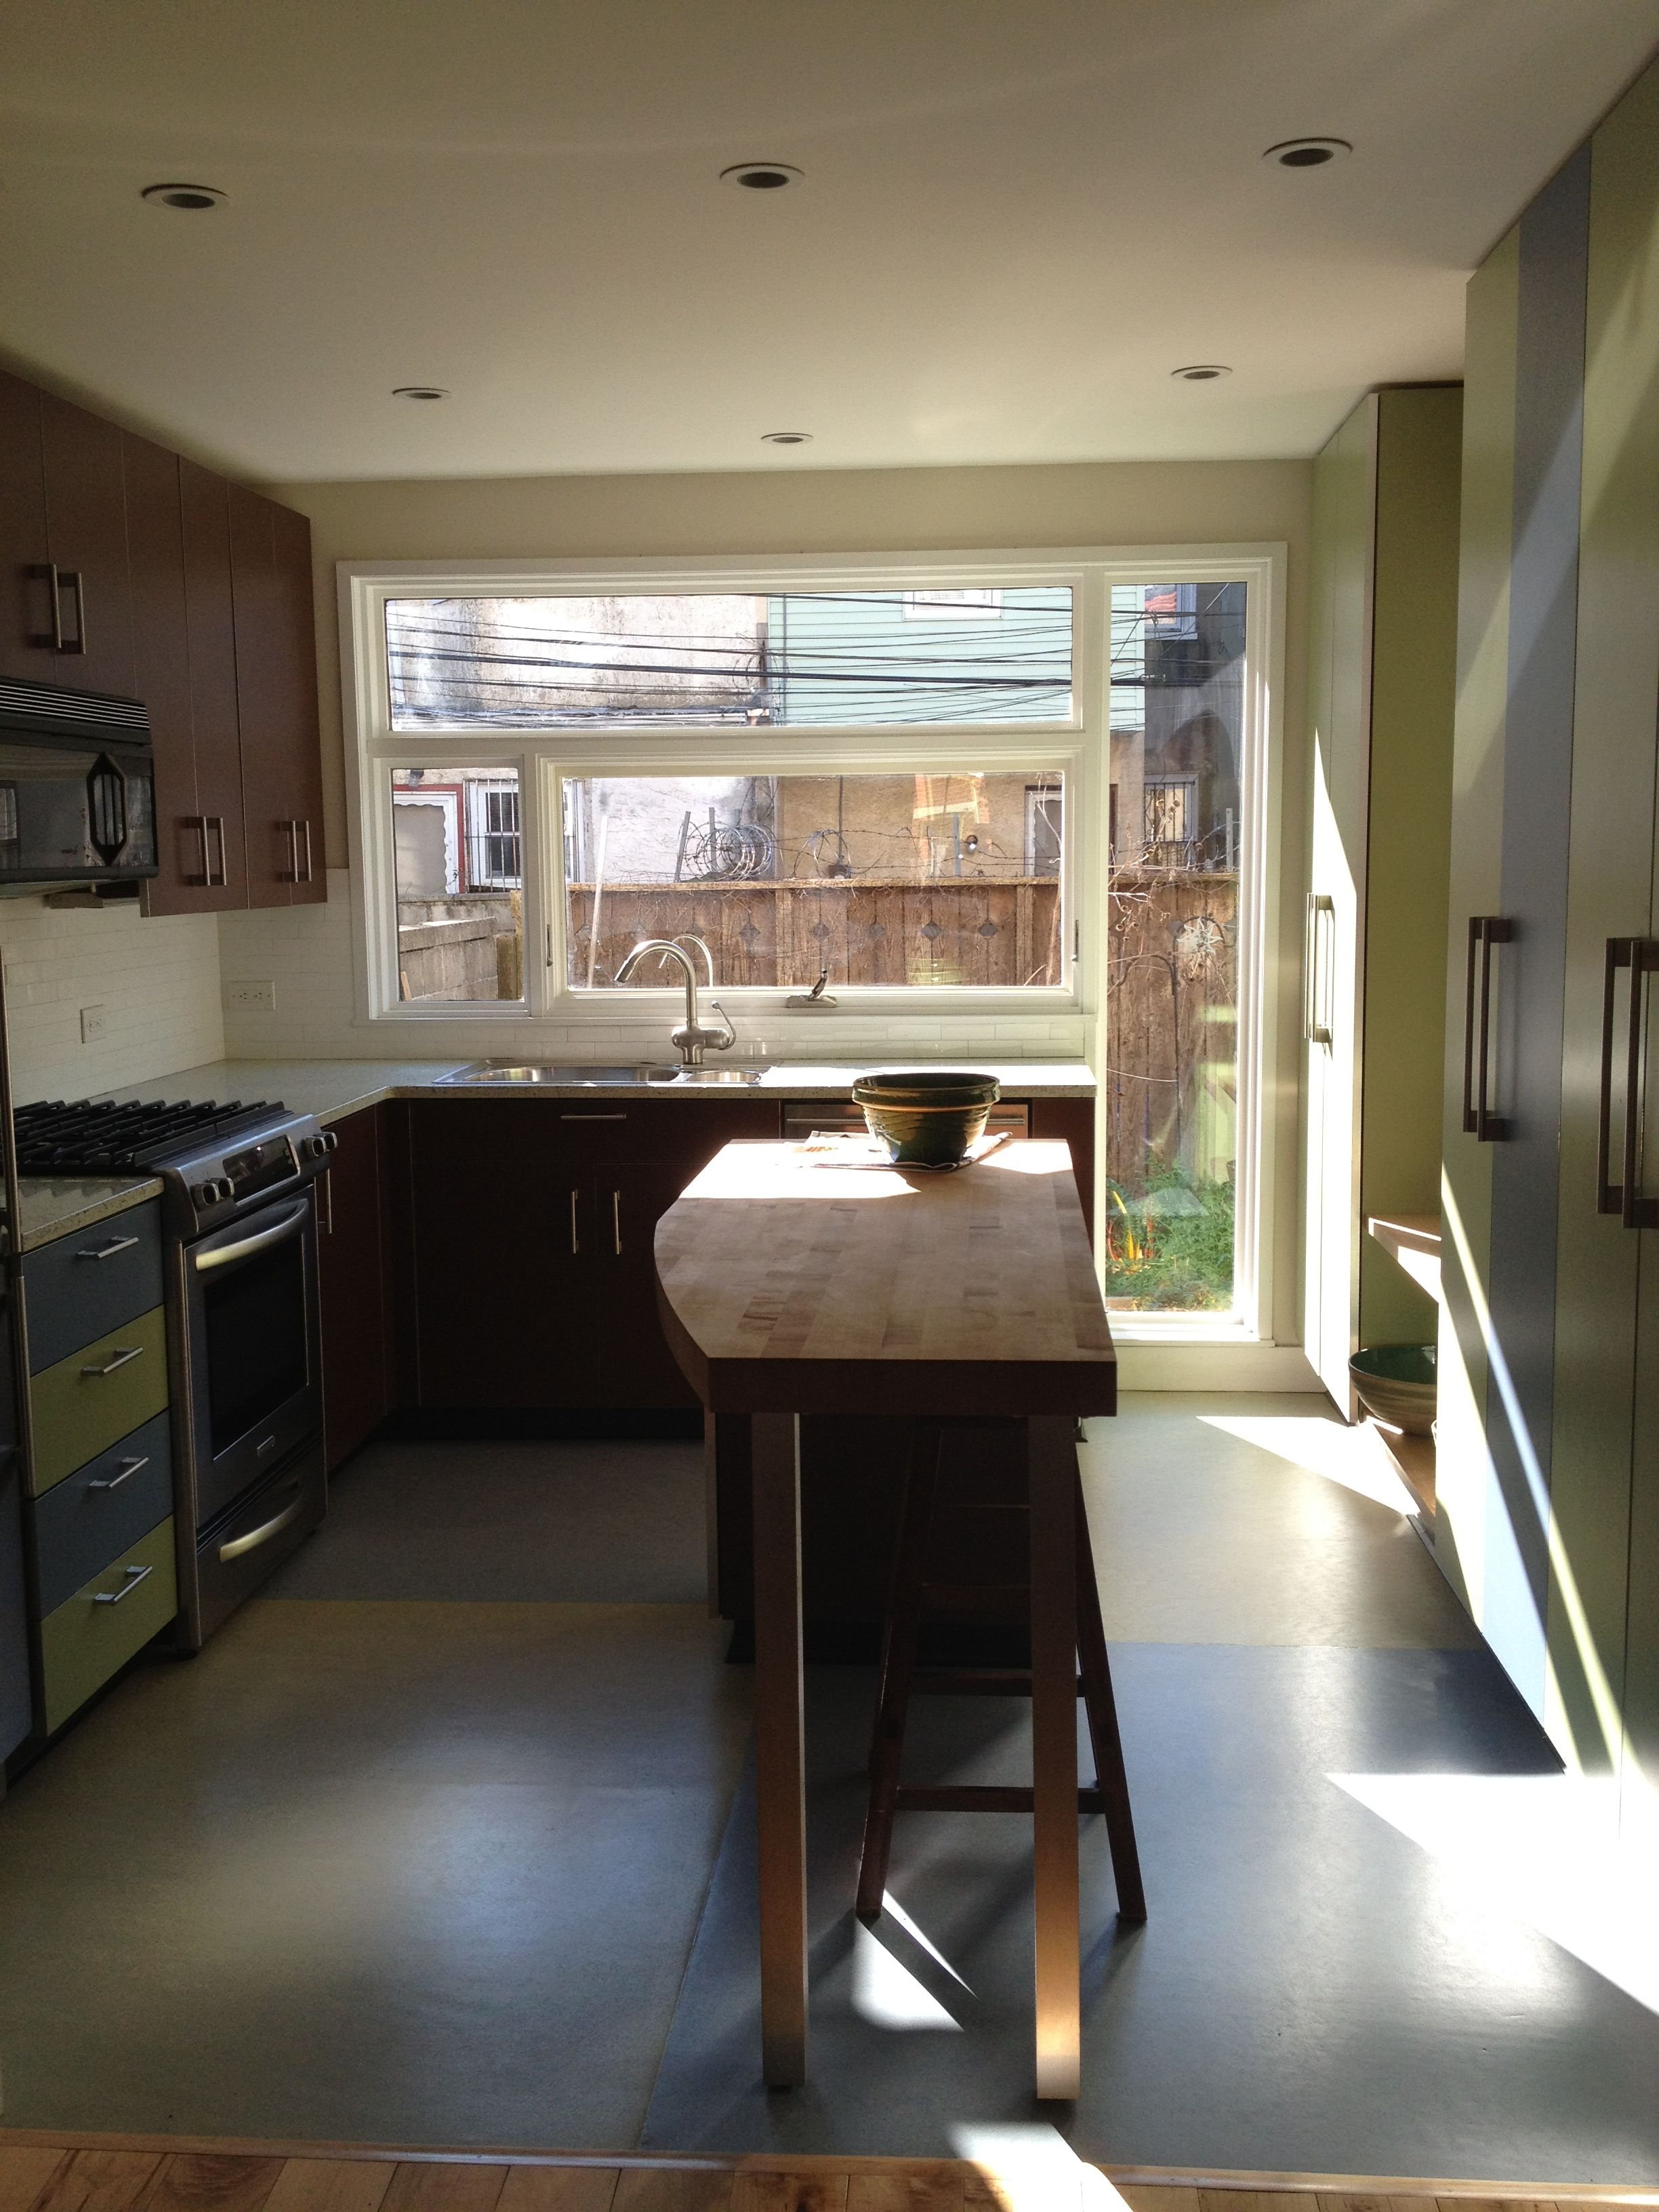 Our Rowhouse Has A 120 Square Foot Kitchen We Added Large Windows To Get Southern Light Into The House And Varied Cabin Square Kitchen Kitchen Remodel Kitchen